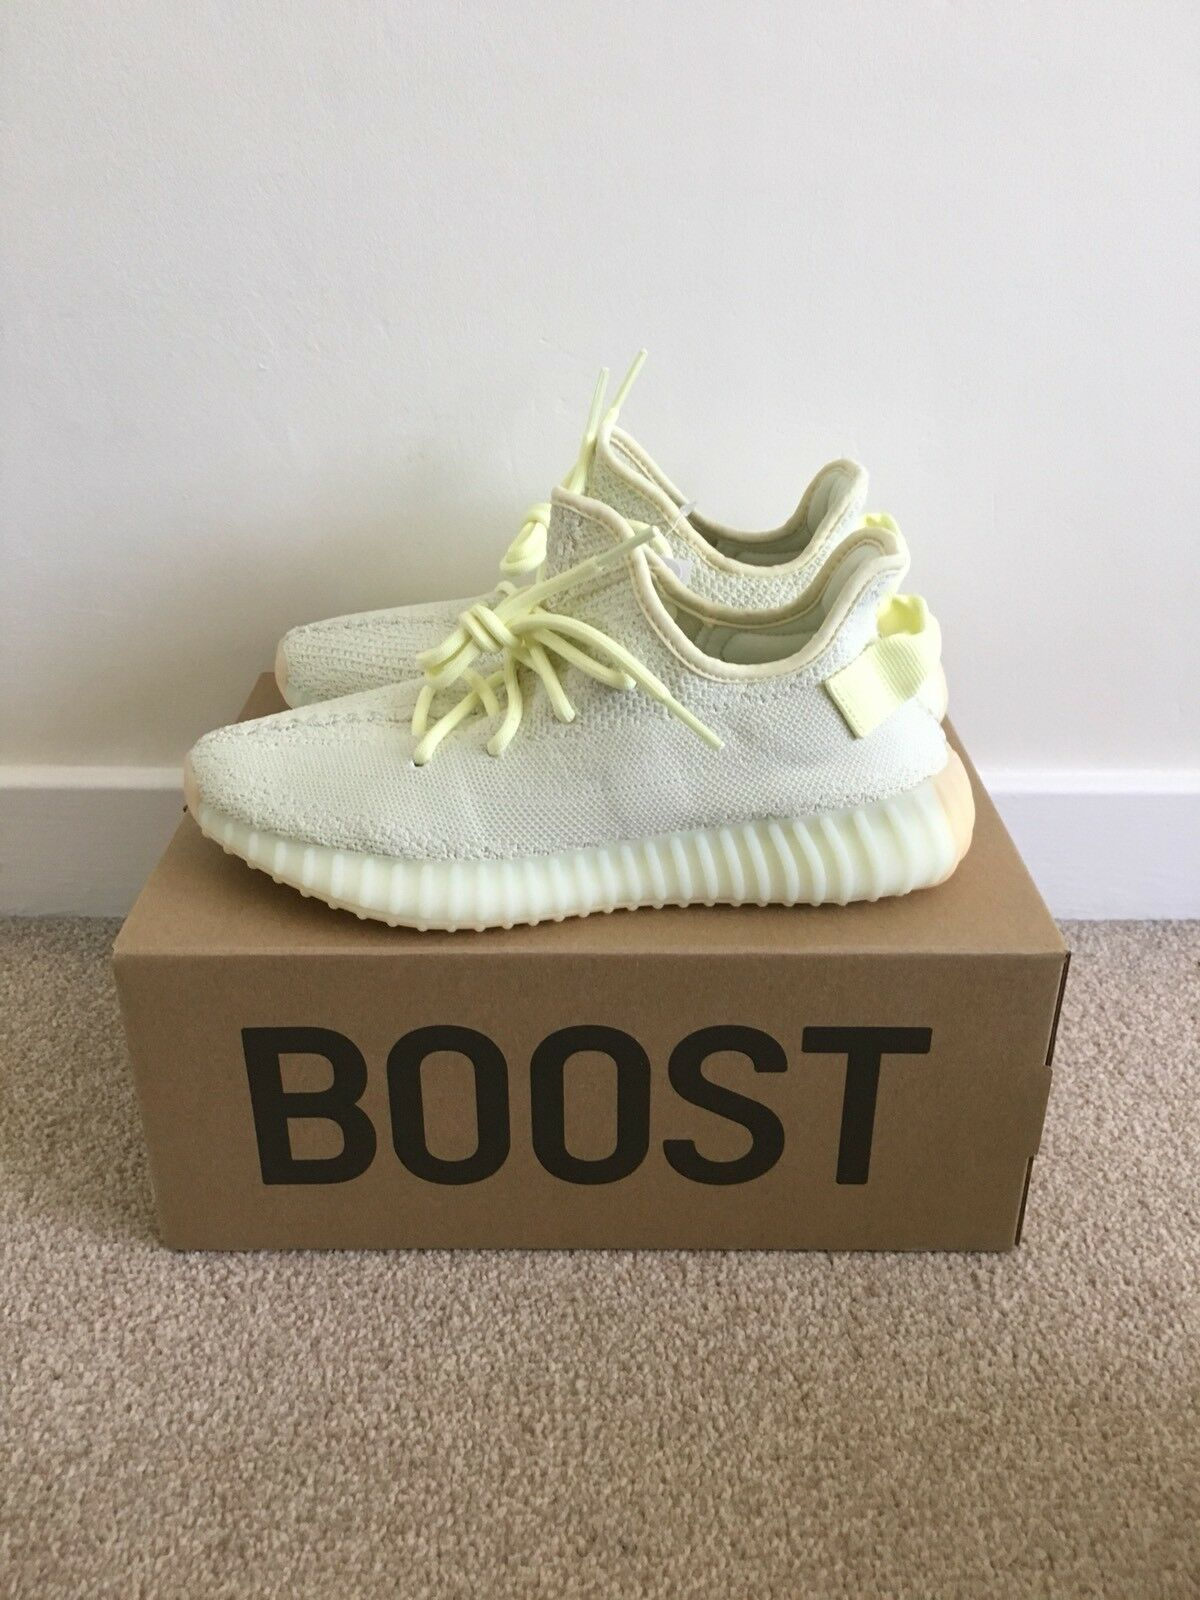 Adidas Yeezy Boost 350 V2 Butter US 13.5 F36980